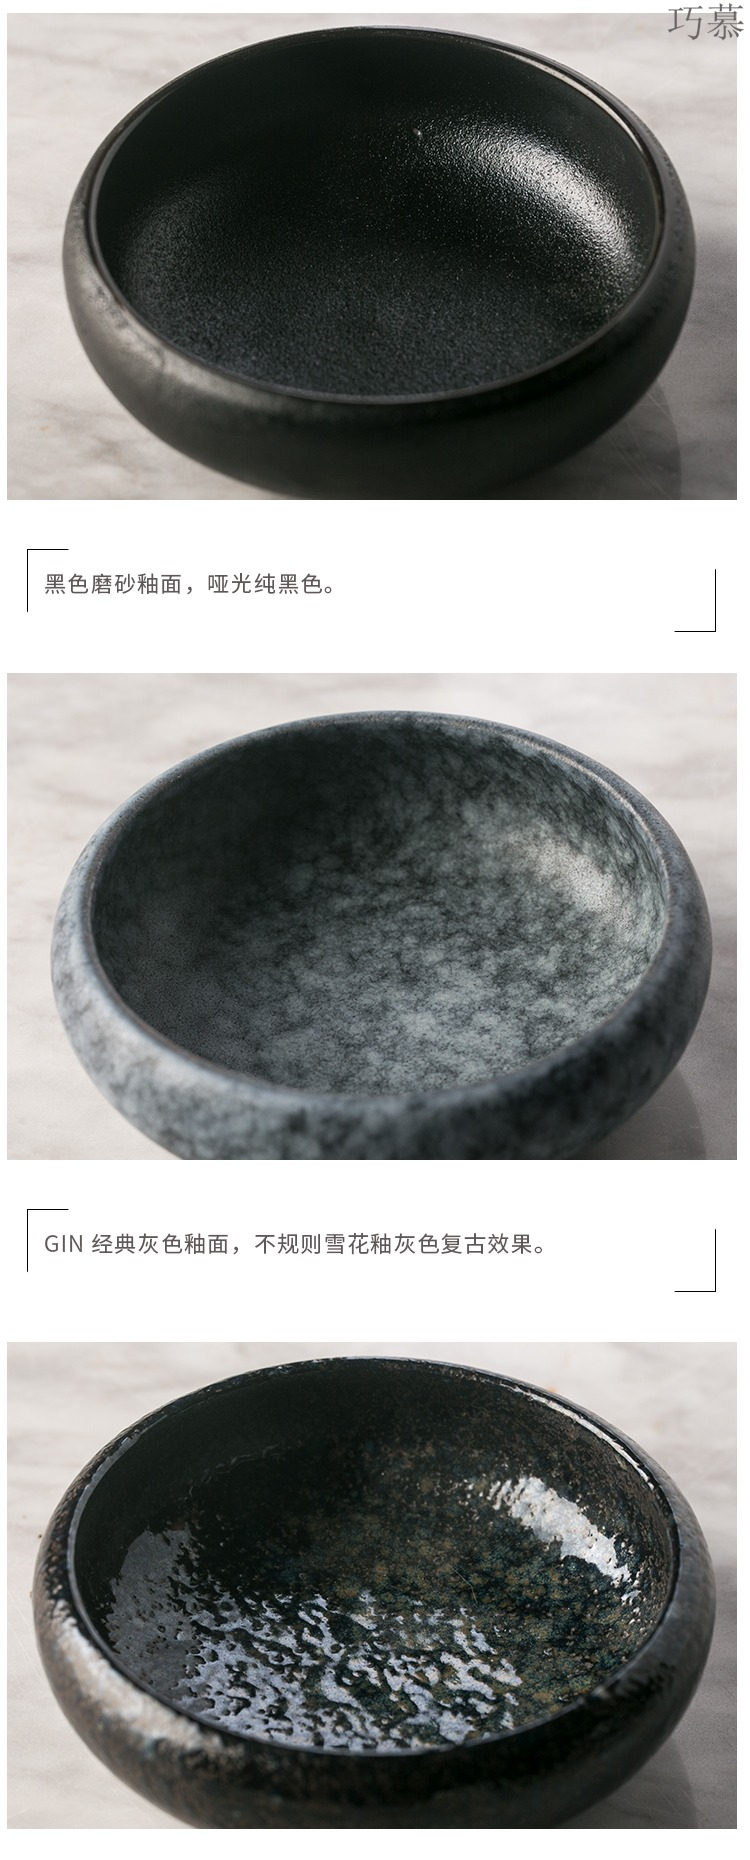 Qiao mu DY creative ceramic paste disc household vinegar dish taste dish of hot pot sauce little restaurant dishes plate snack plate